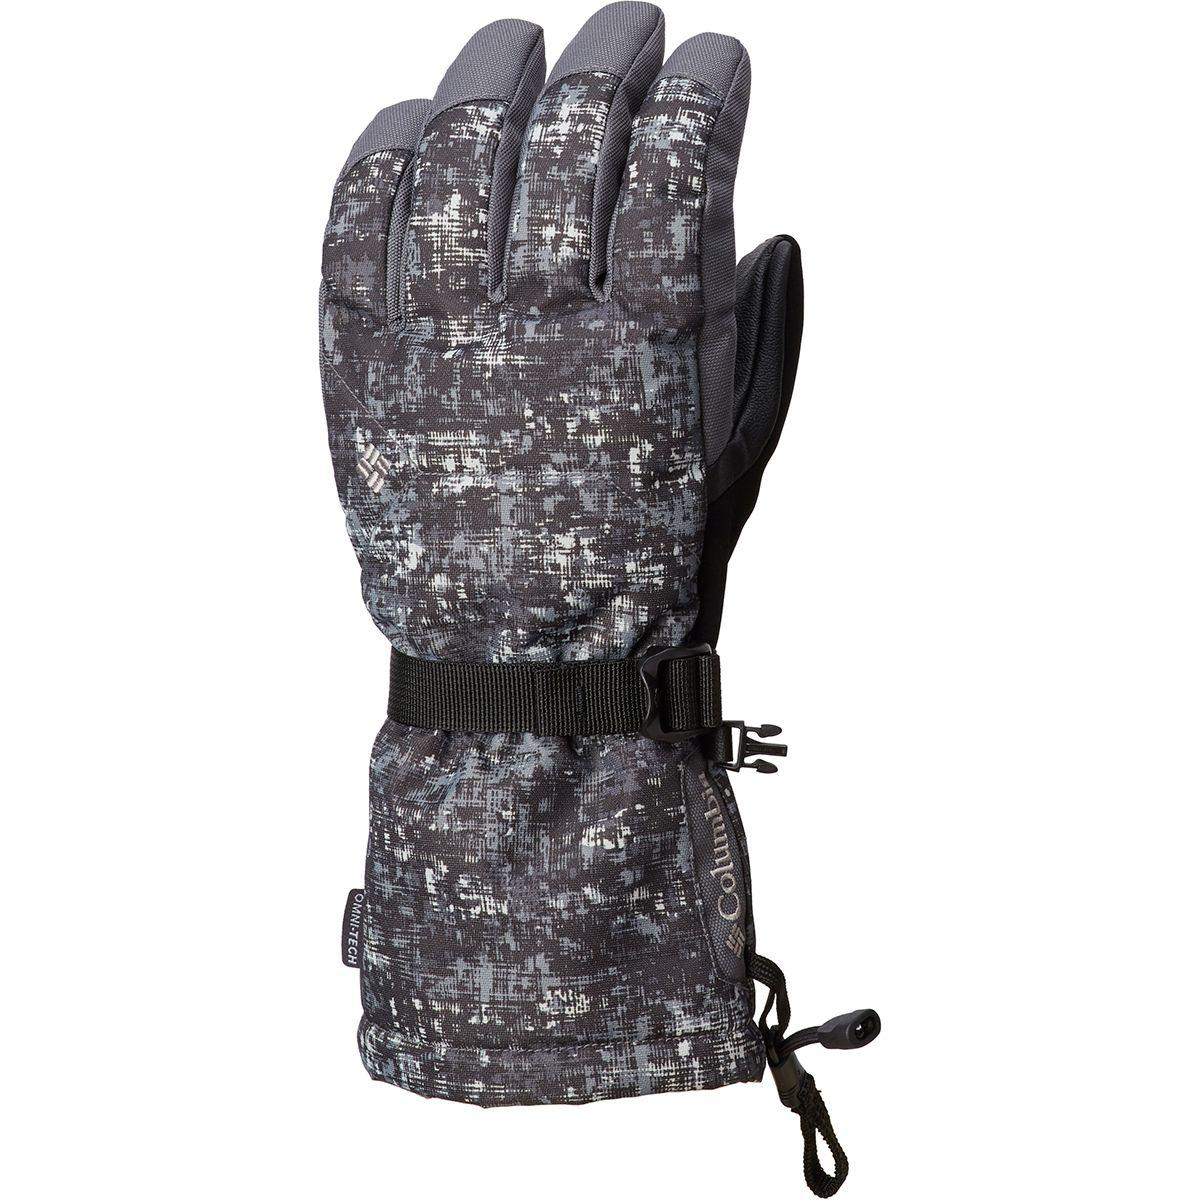 Lyst - Columbia Whirlibird Glove in Black for Men 6529d84414